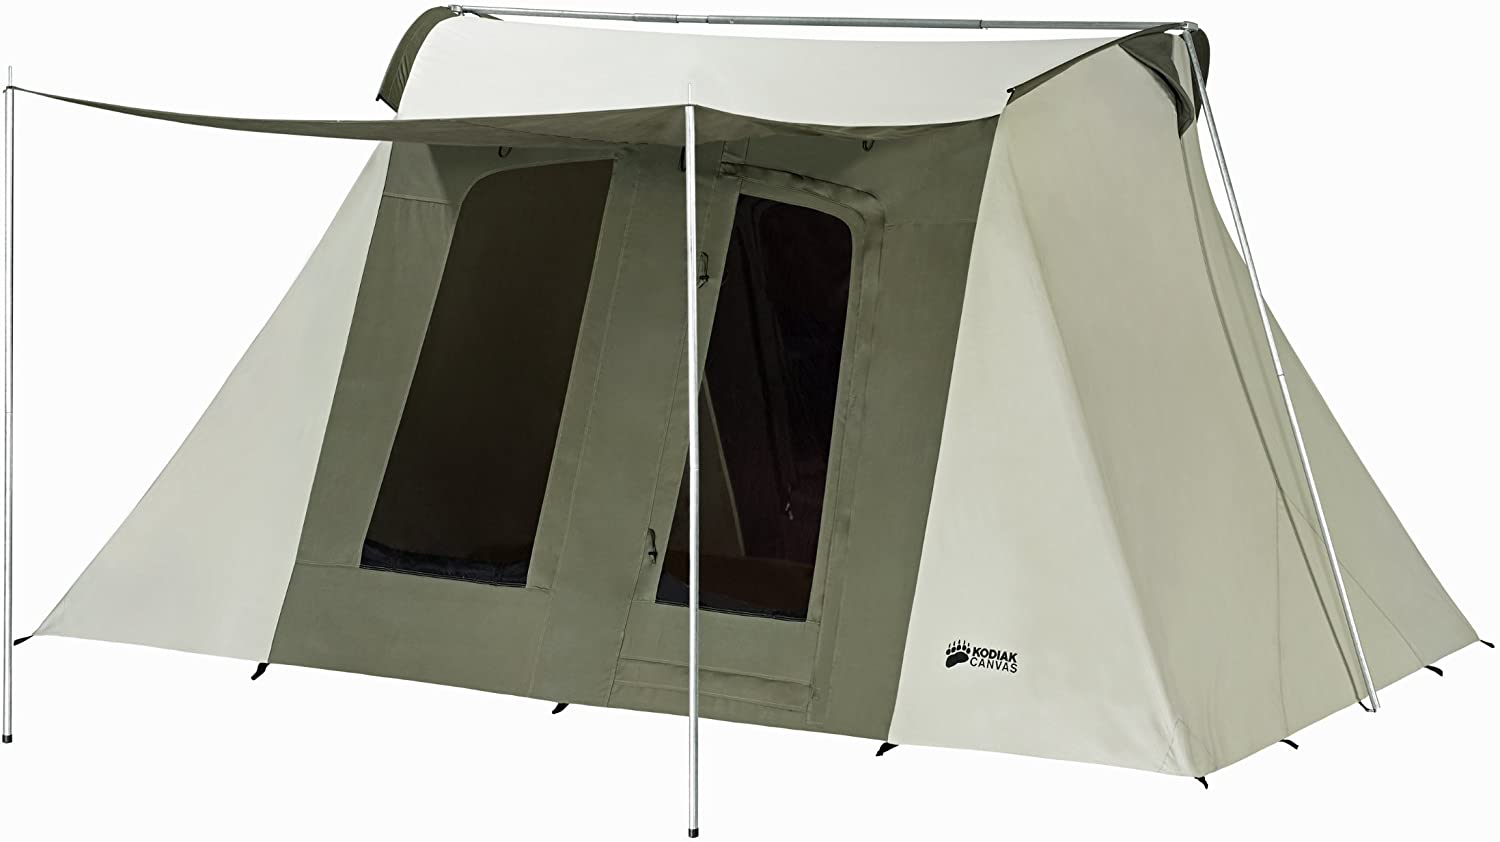 Top 10 Best Tents for High Winds 2020 Reviews 20